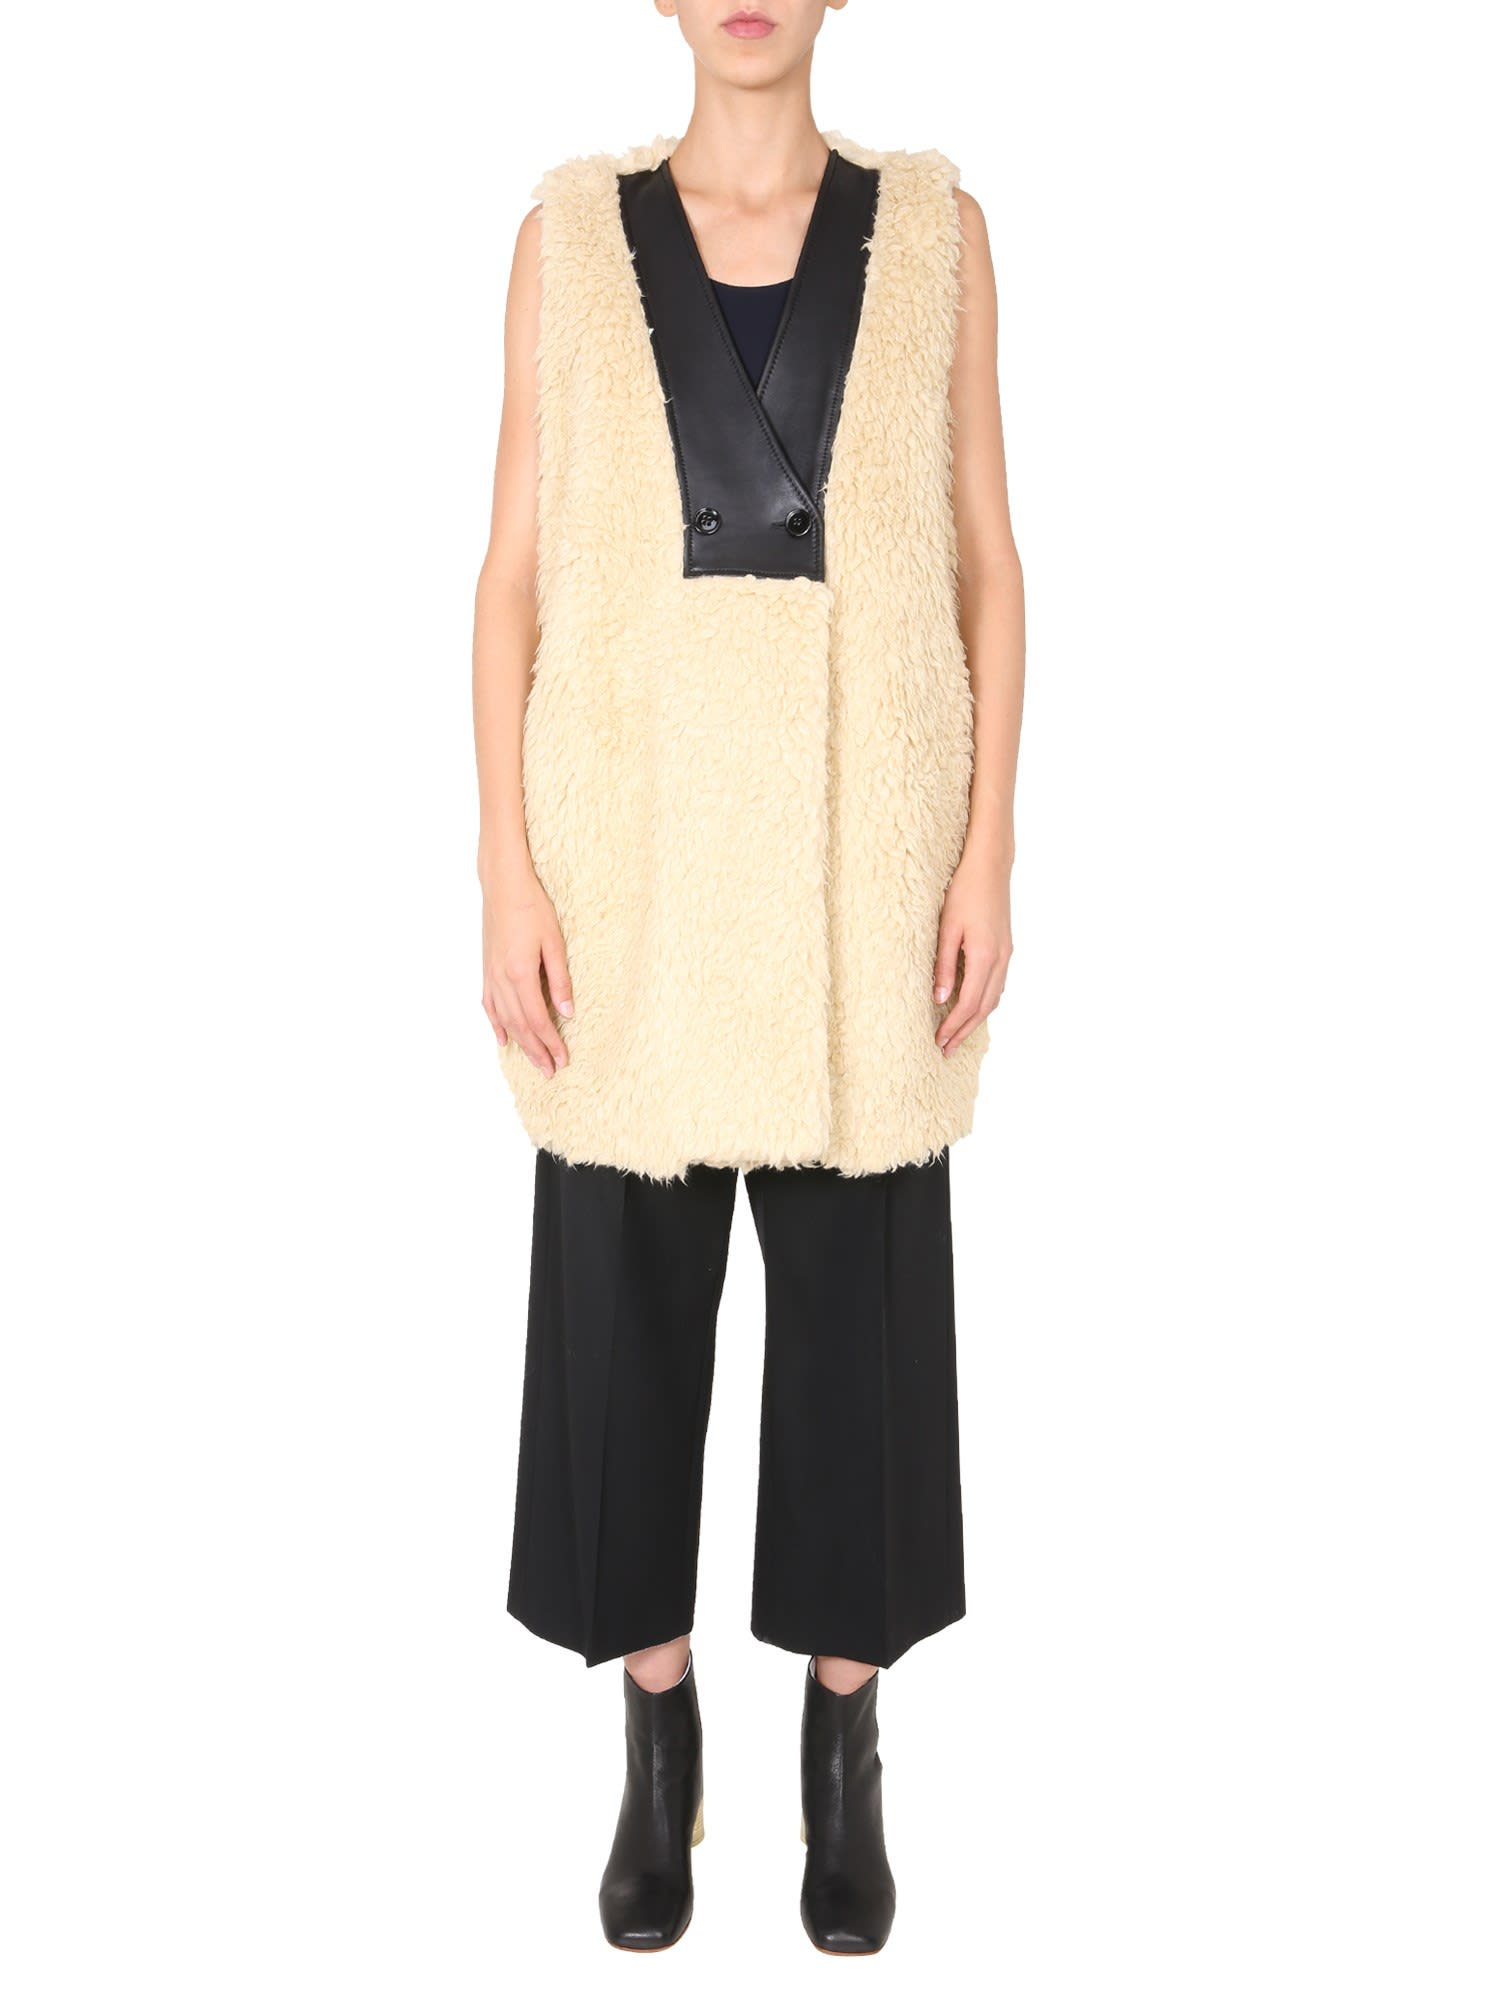 MM6 MAISON MARGIELA SHEARLING VEST